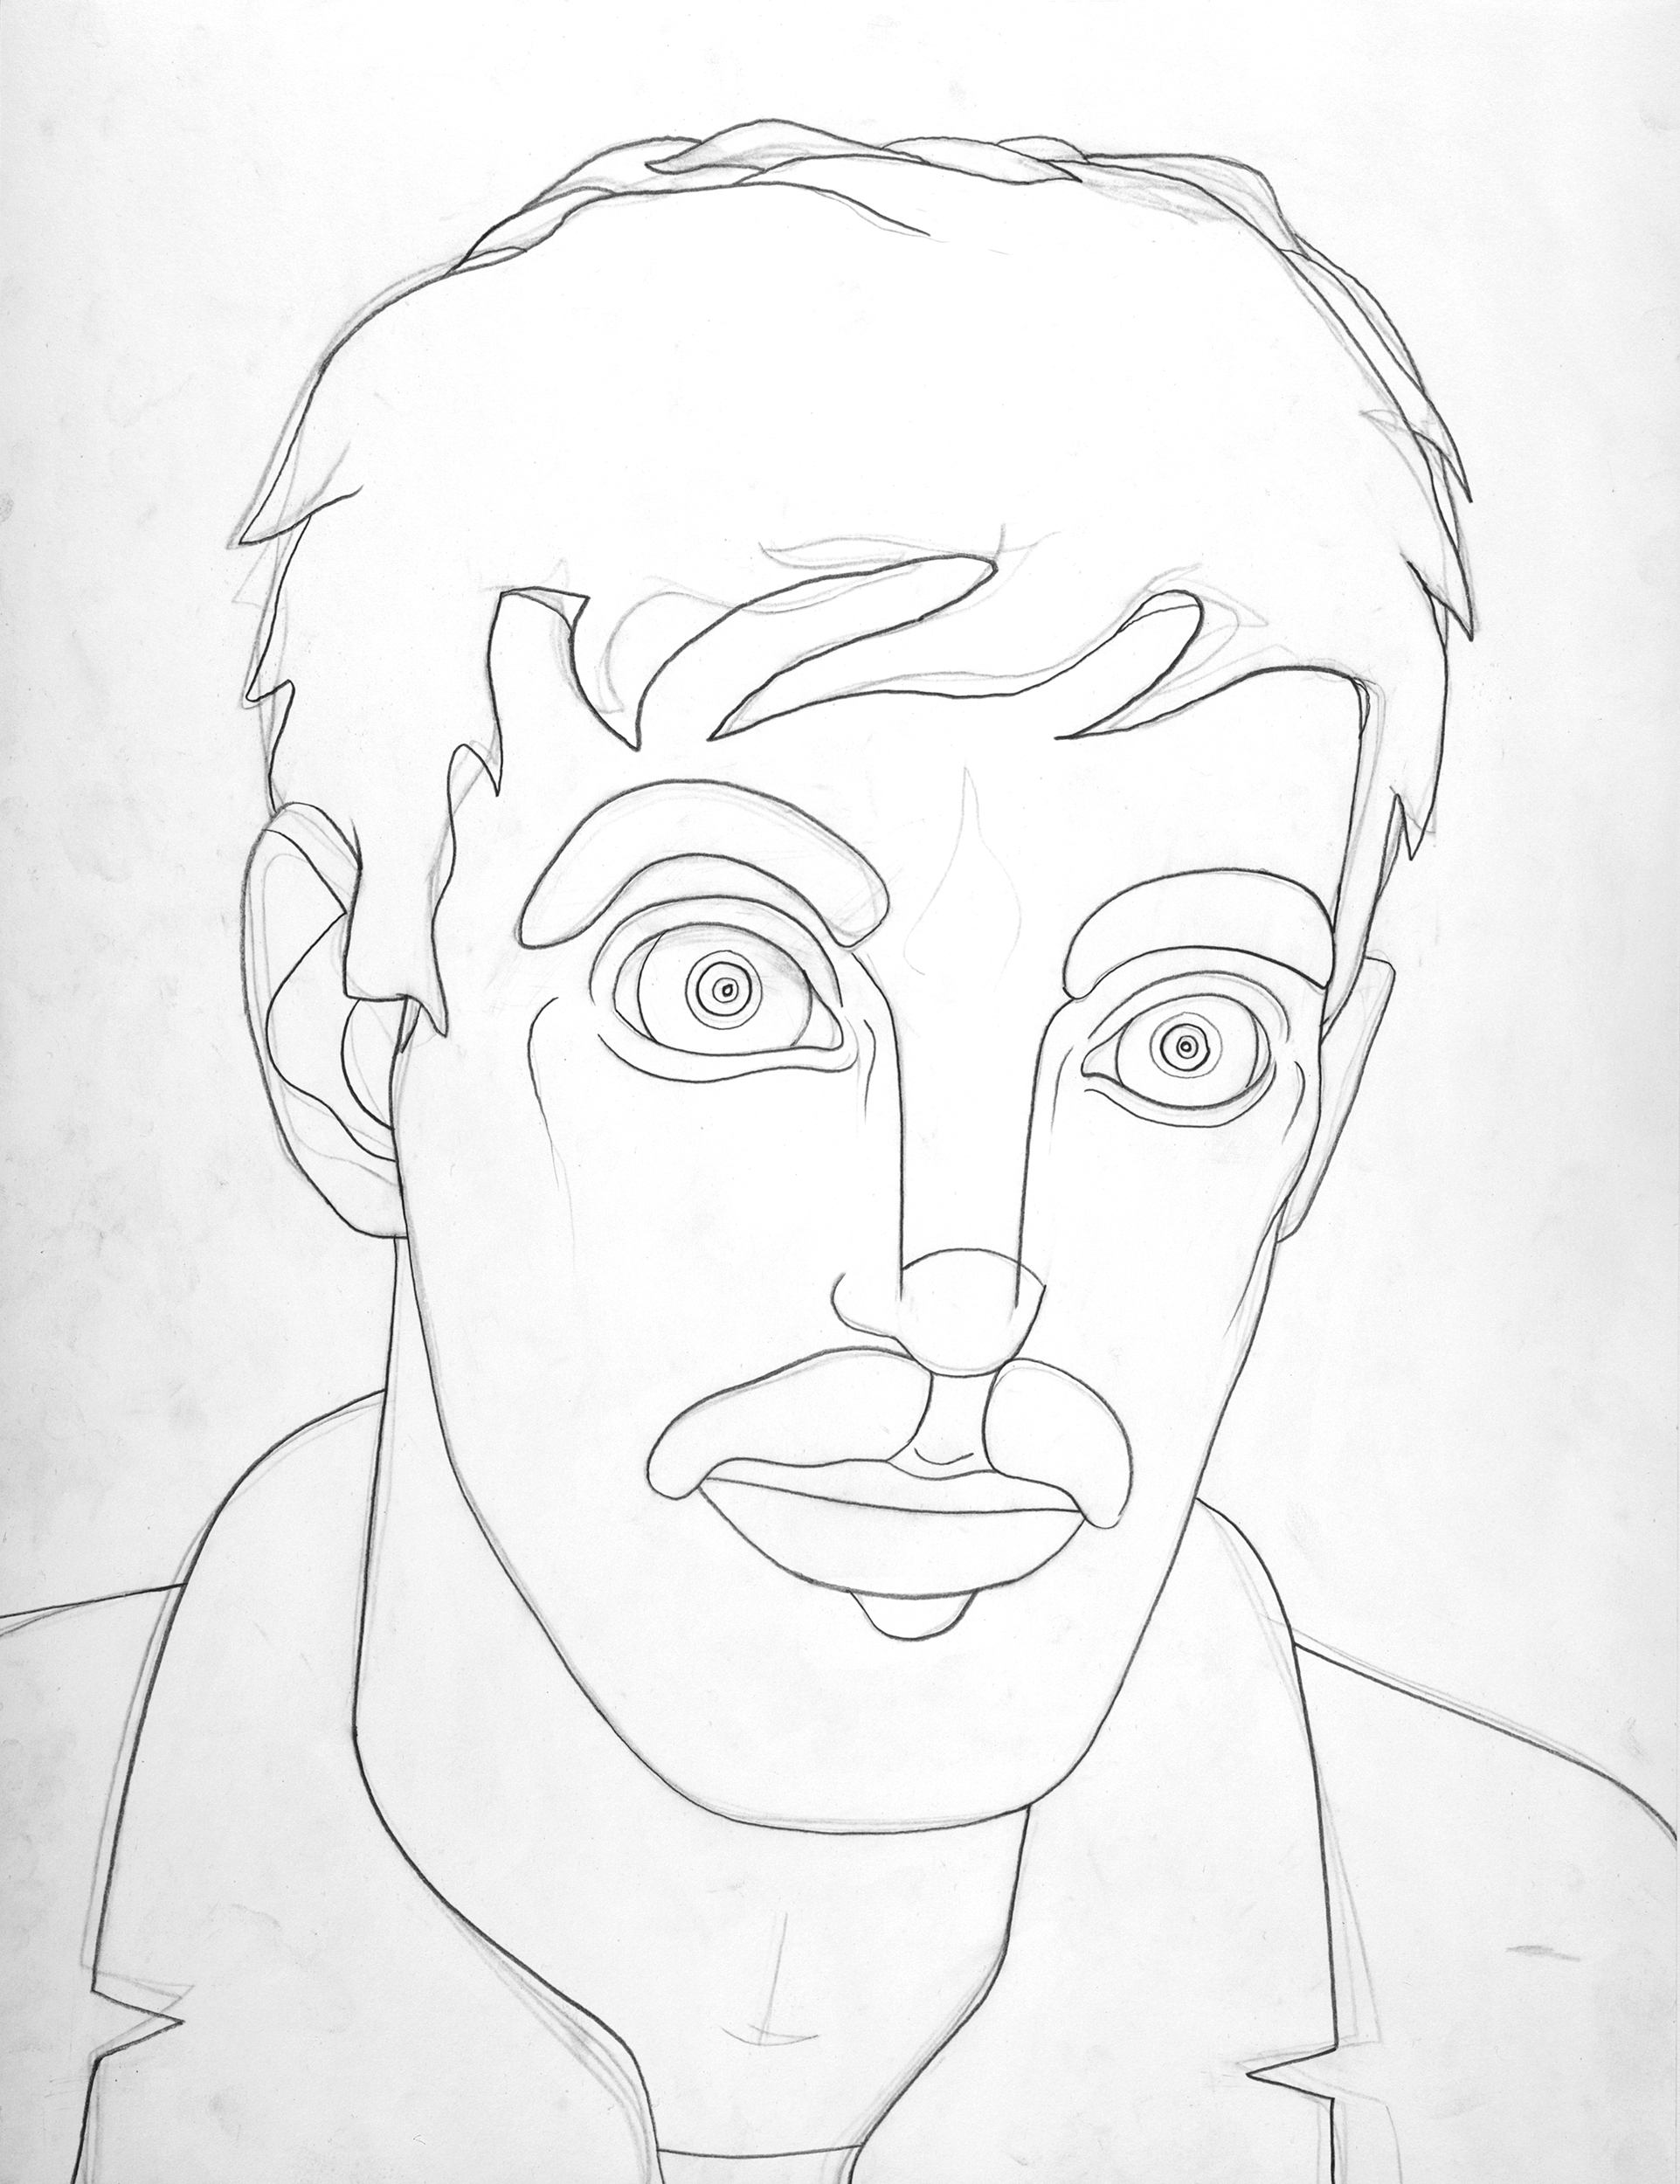 Self-portrait with Moustache, drawing by Wouter van Riessen